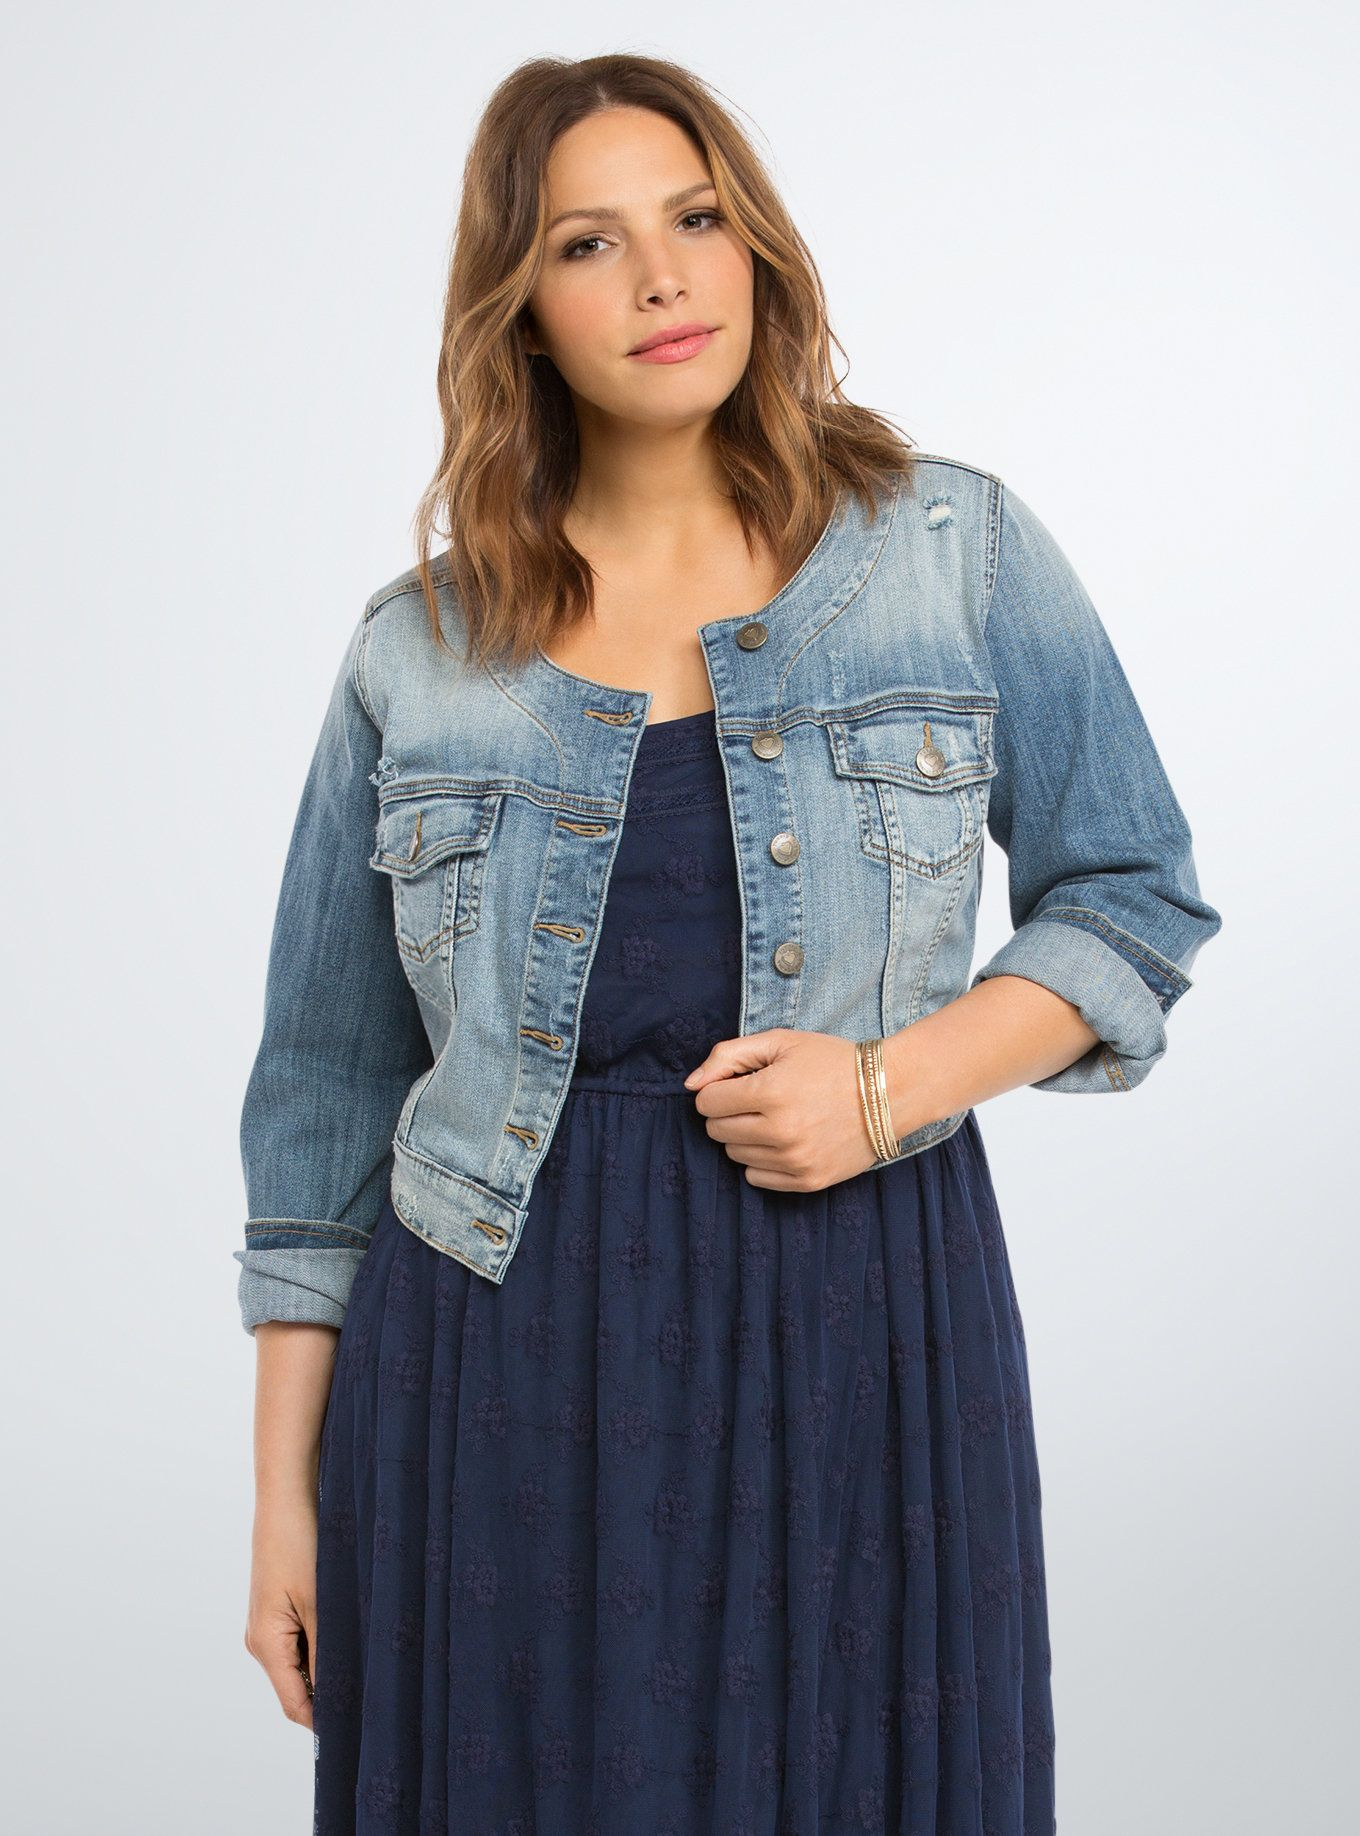 Cropped Denim Jacket | Cropped denim jacket, Denim jackets and Torrid